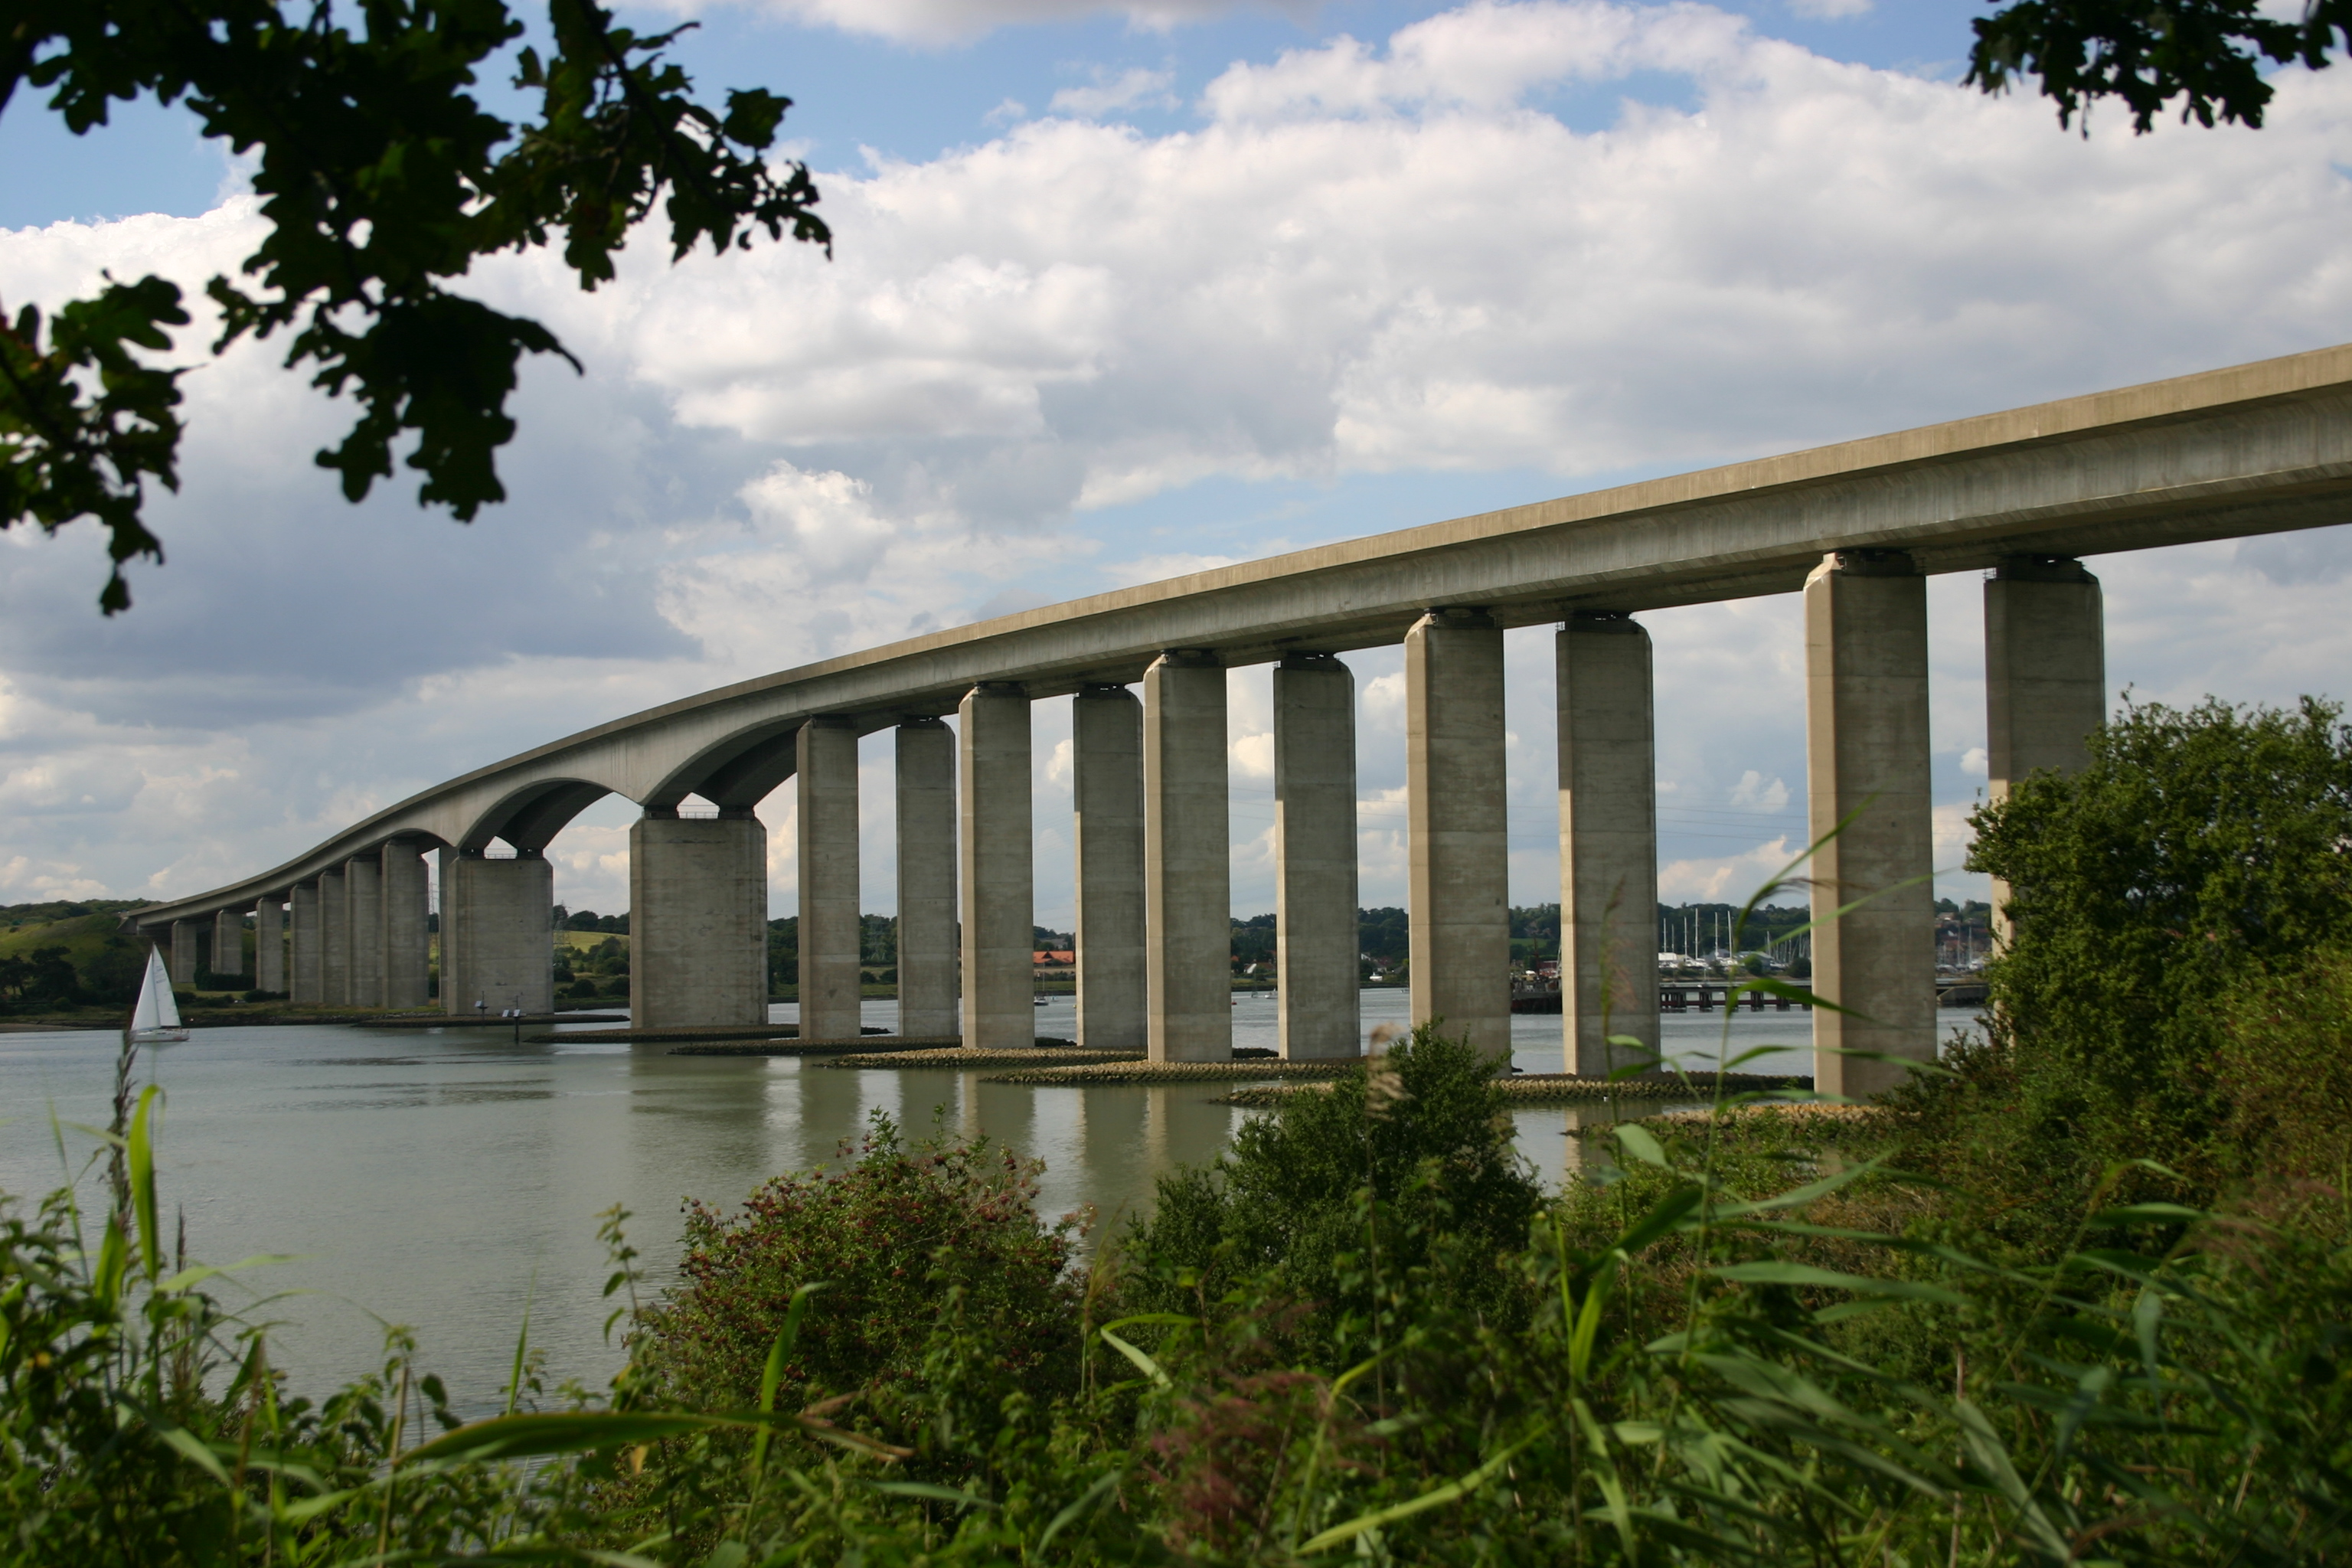 Orwell bridge photo